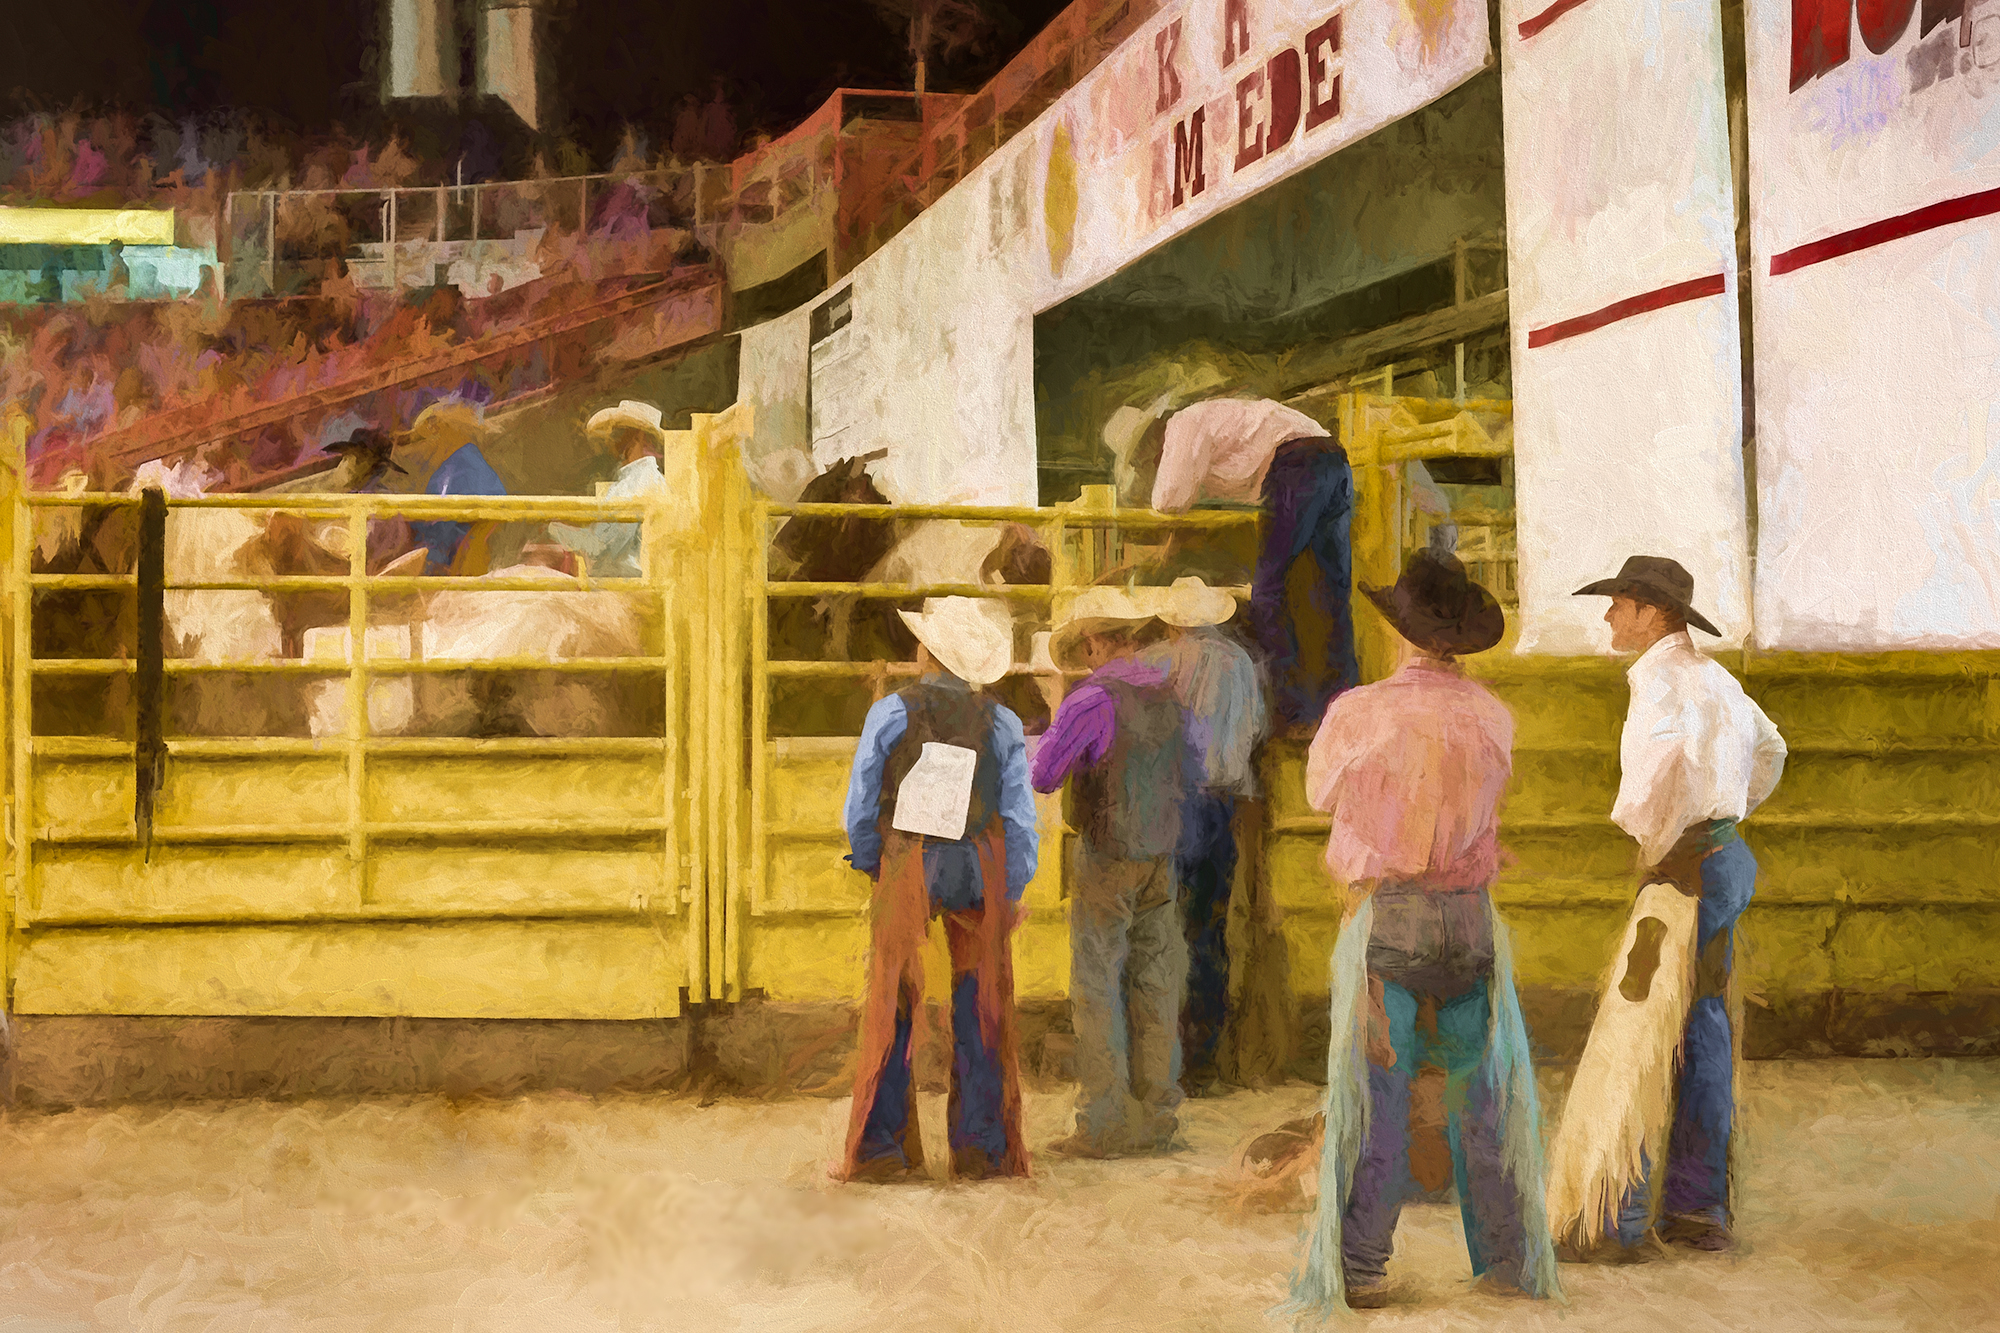 © 2016 Lawrence Manning, 5885 Rodeo study #2